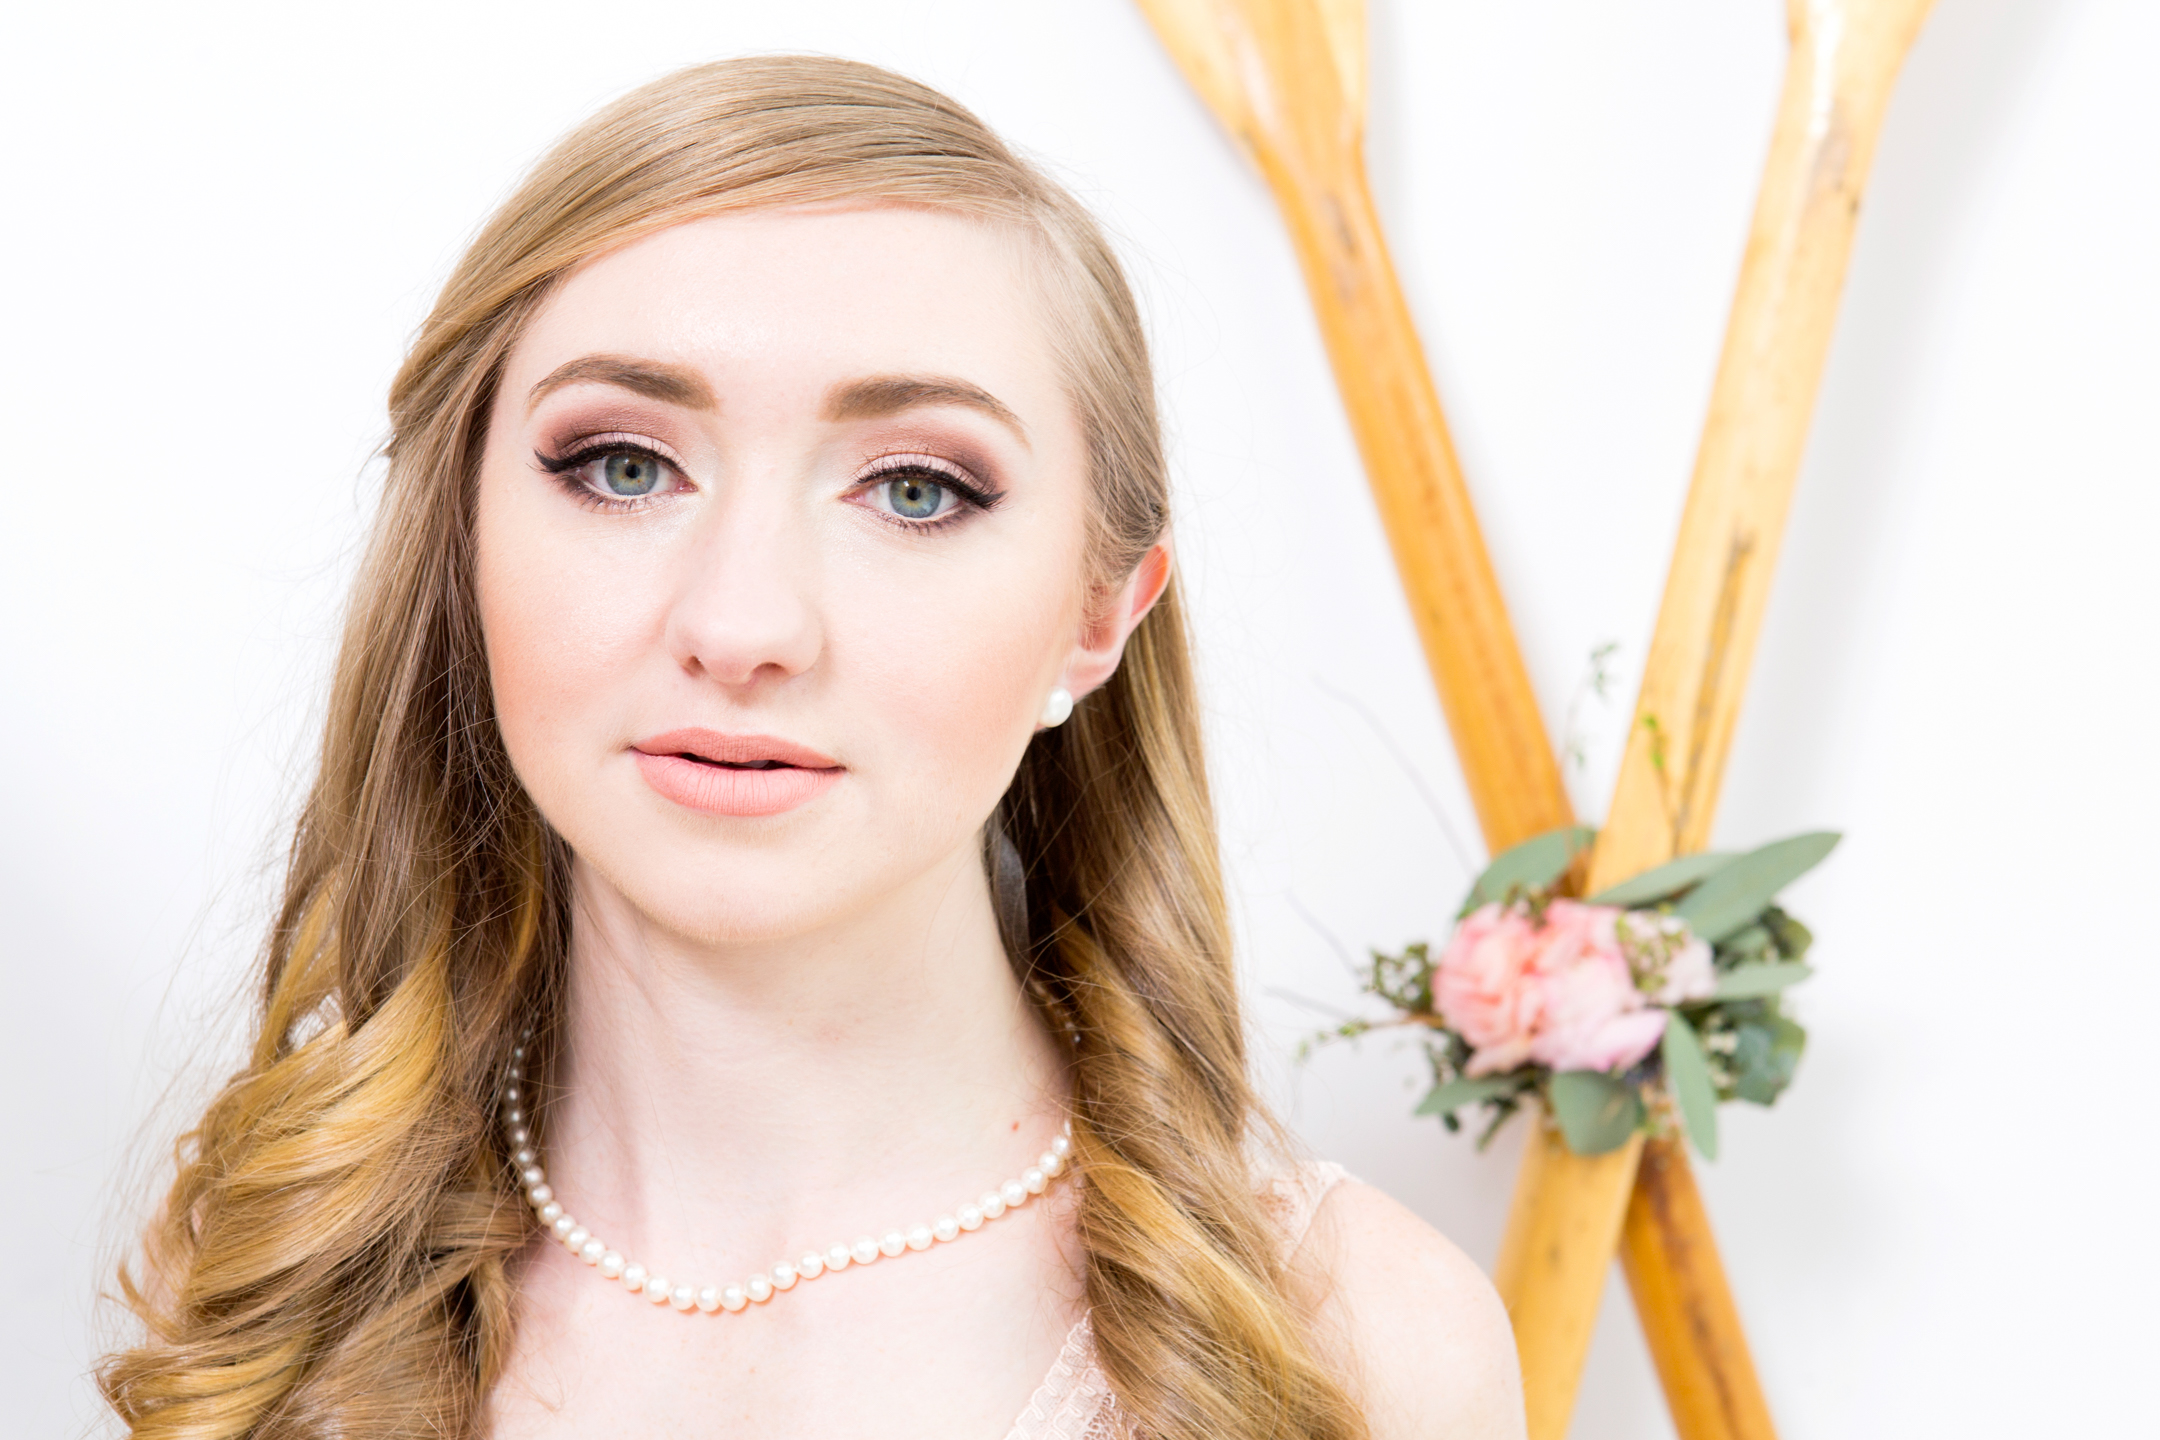 photo by  The Best Men Wedding Photography | Hair by Sofia Pastro for Artistry By Alexa ( DM & Company / Life Of Hair )